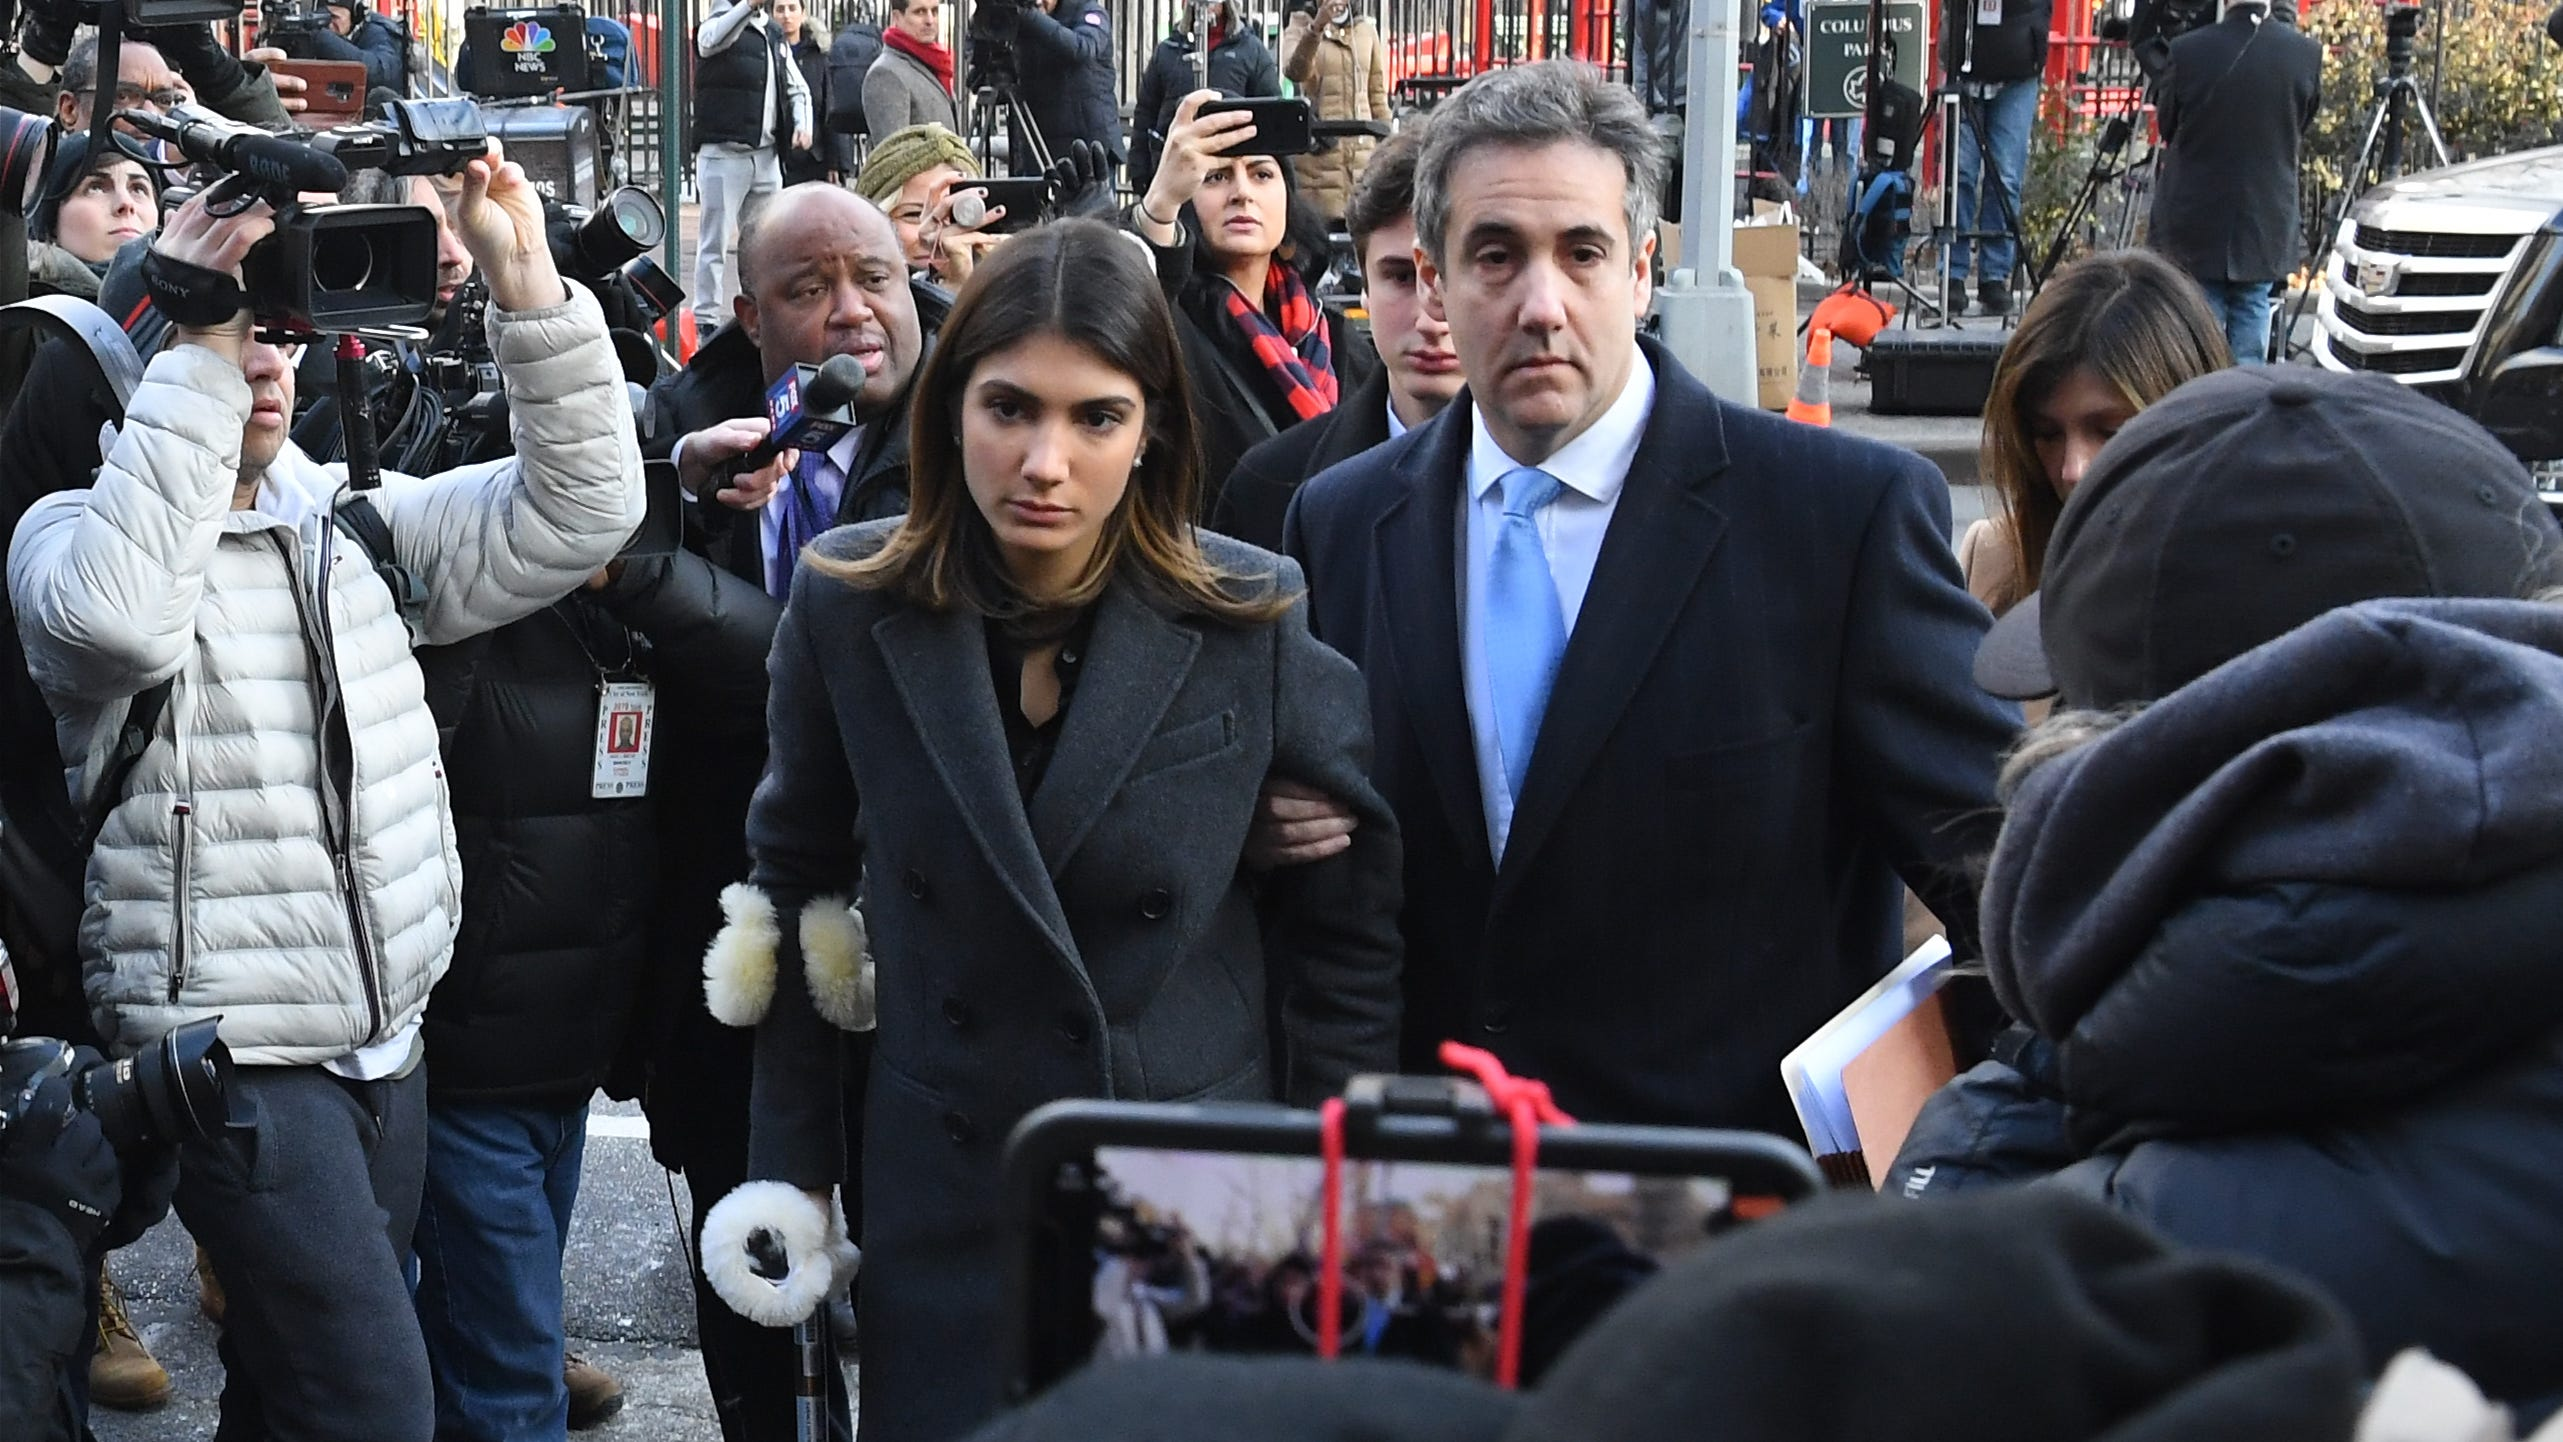 Michael Cohen, President Donald Trump's former personal lawyer, arrives with daughter Samantha Blake Cohen and wife Laura Shusterman, at right, at U.S. District Court New York on Dec. 12, 2018. He was to be sentenced for campaign-finance violations and lying to Congress.